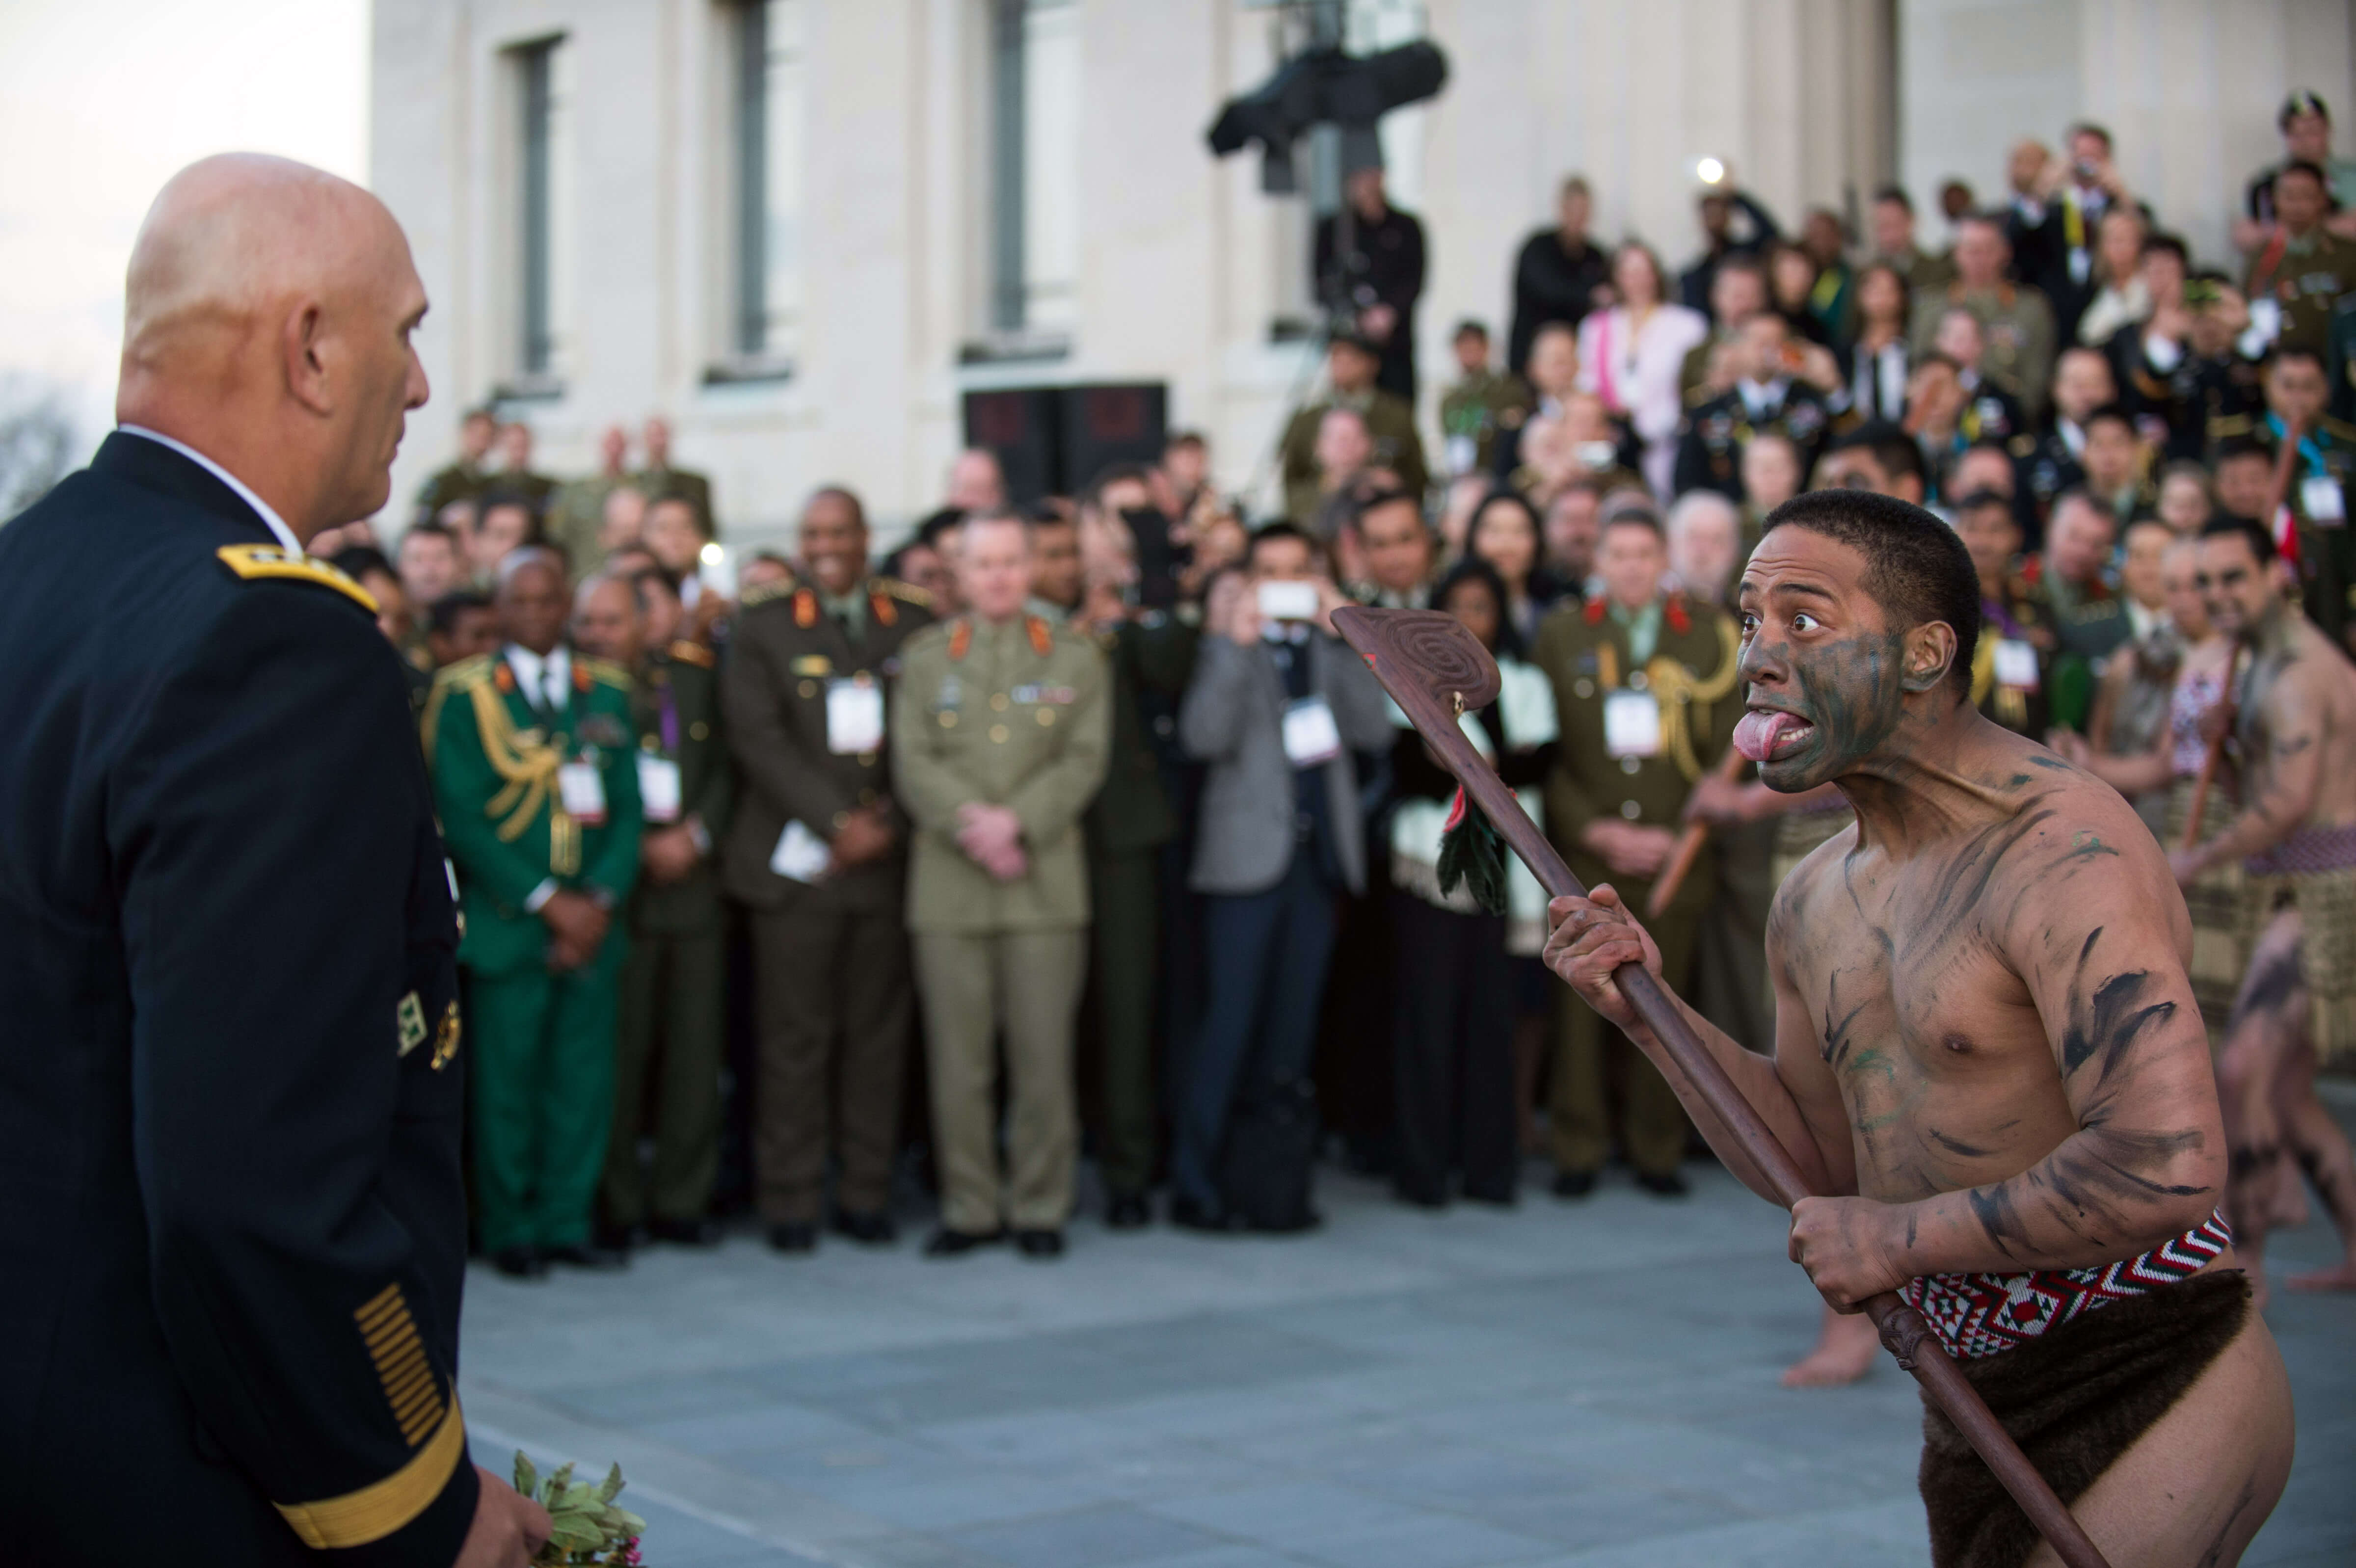 Mauri soldiers, the indigenous Polynesian people of New Zealand, perform a Powhiri ceremony for U.S. Army Chief of Staff Gen. Ray Odierno in Auckland in 2013. Source: U.S. Army